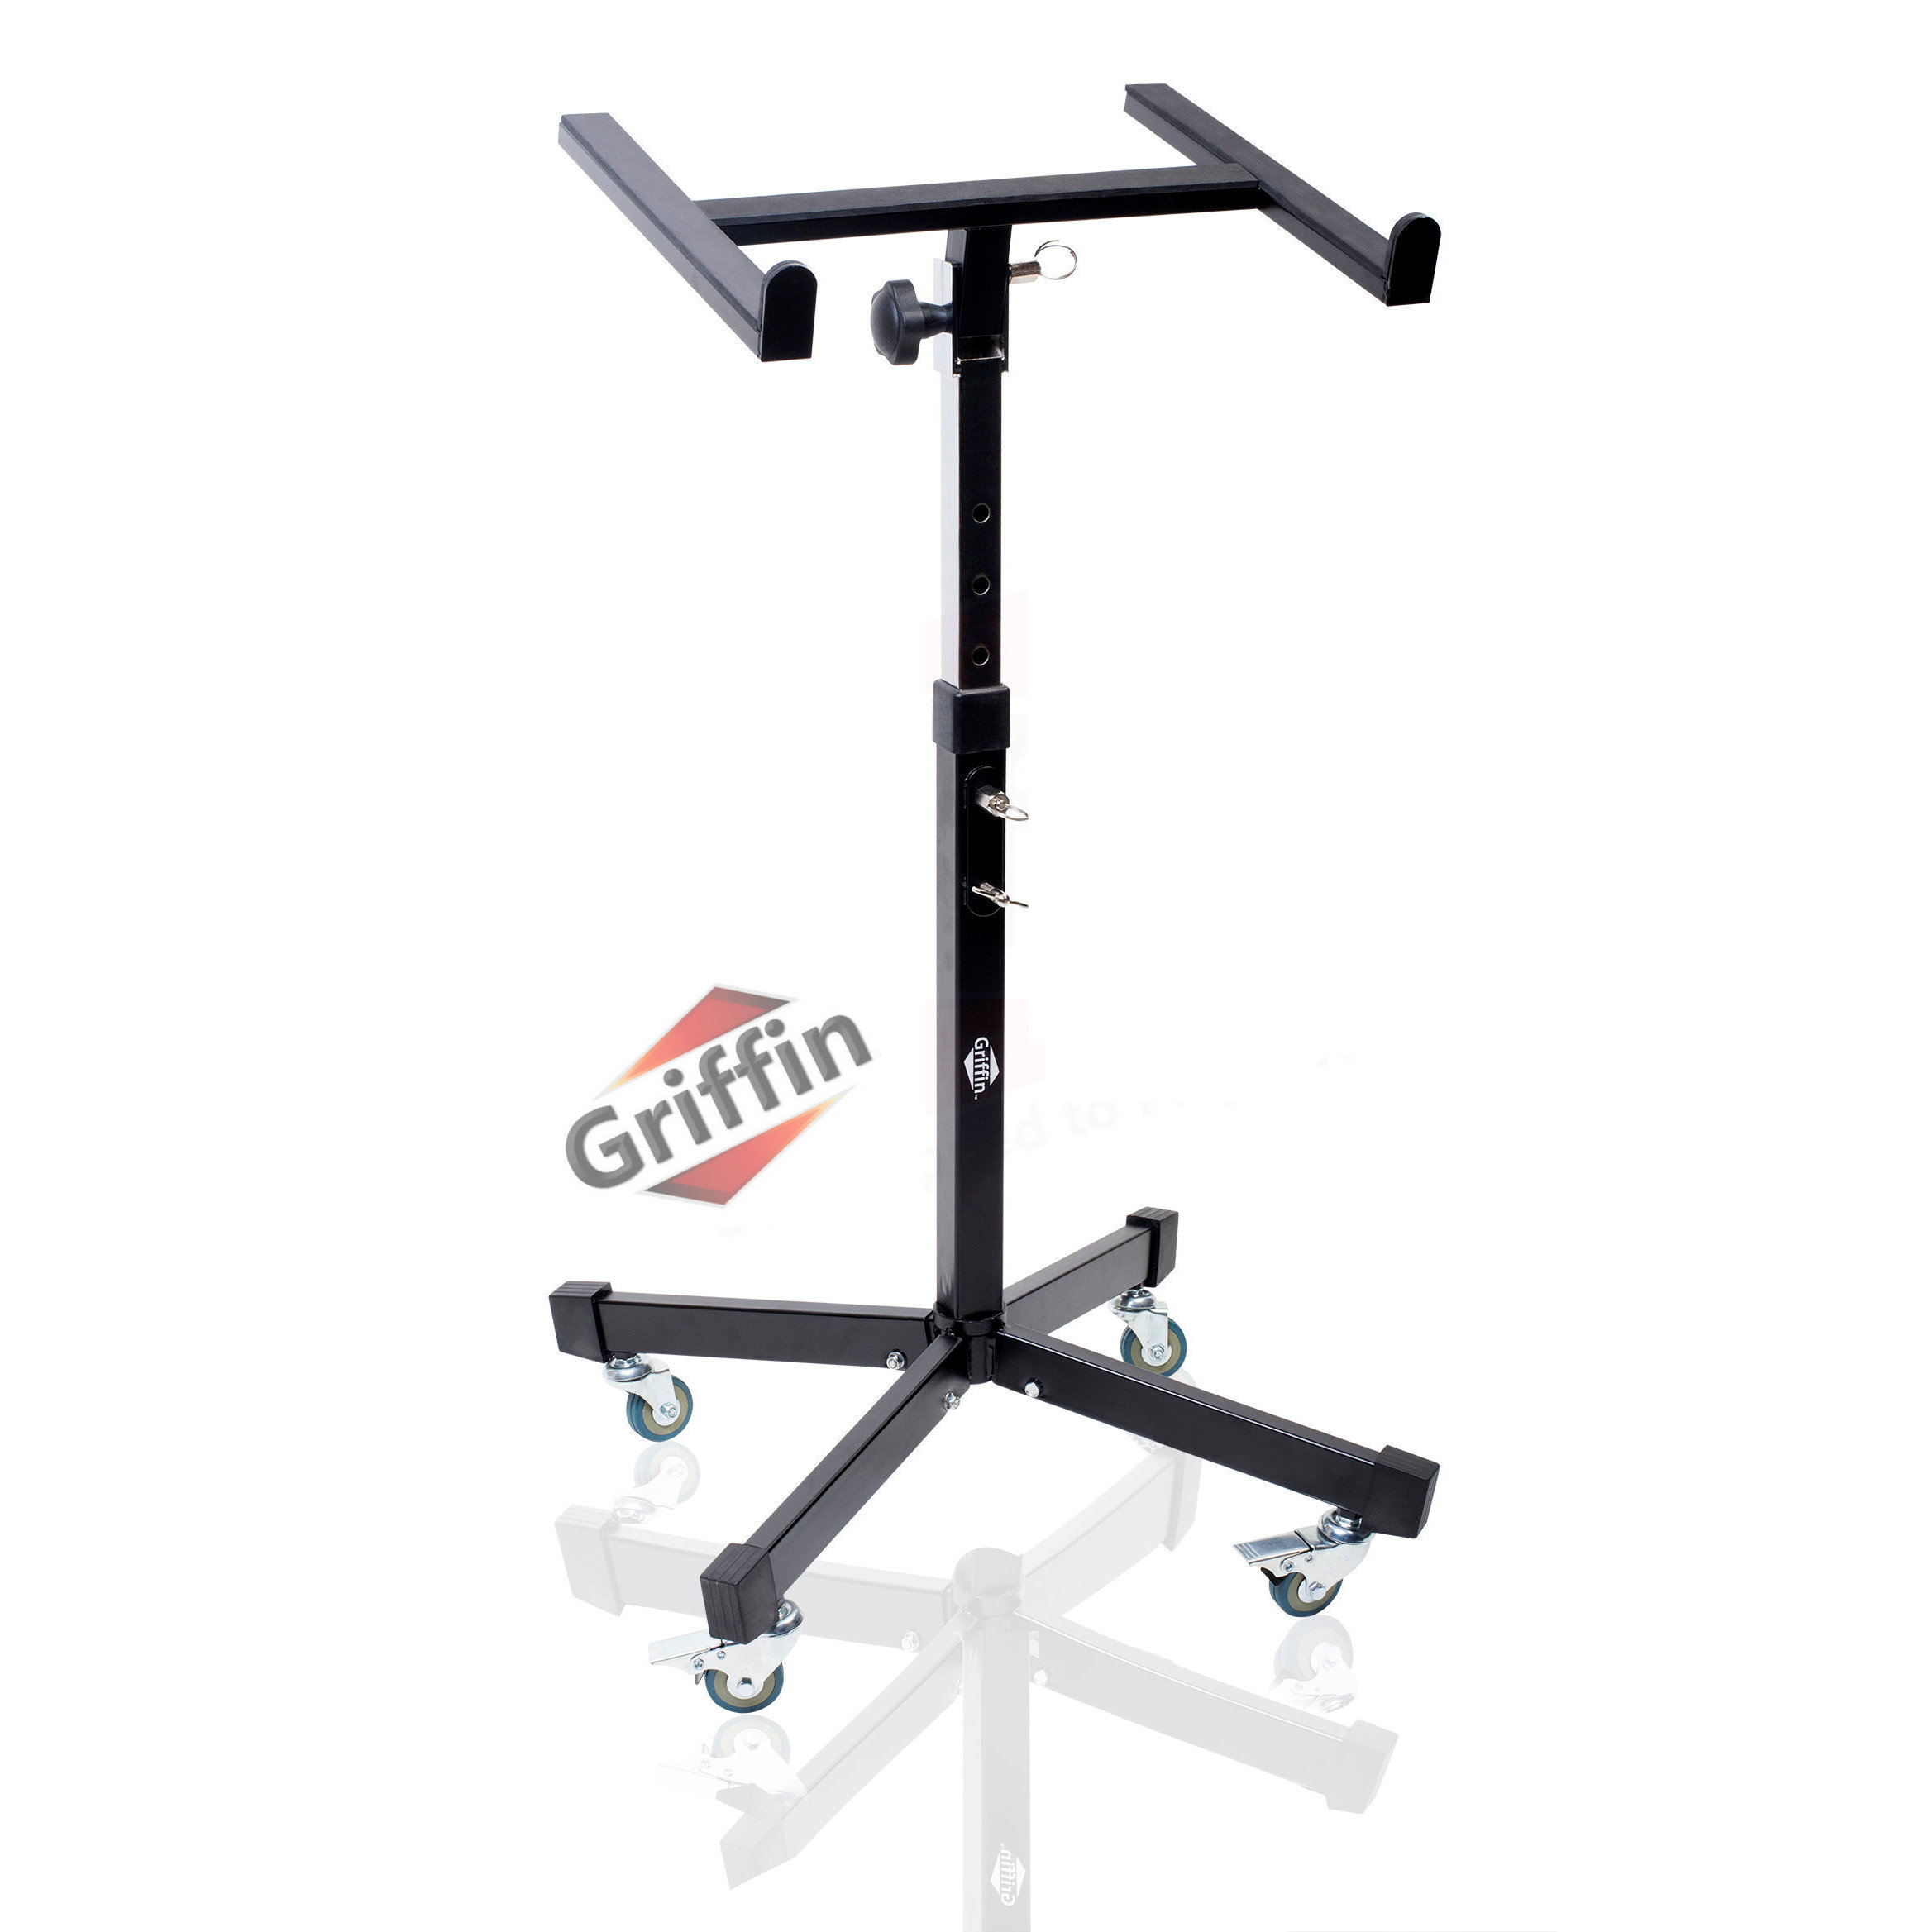 Studio Mixer Stand on Wheels Rolling Audio Stage DJ Cart on Casters Adjustable & Portable By Griffin